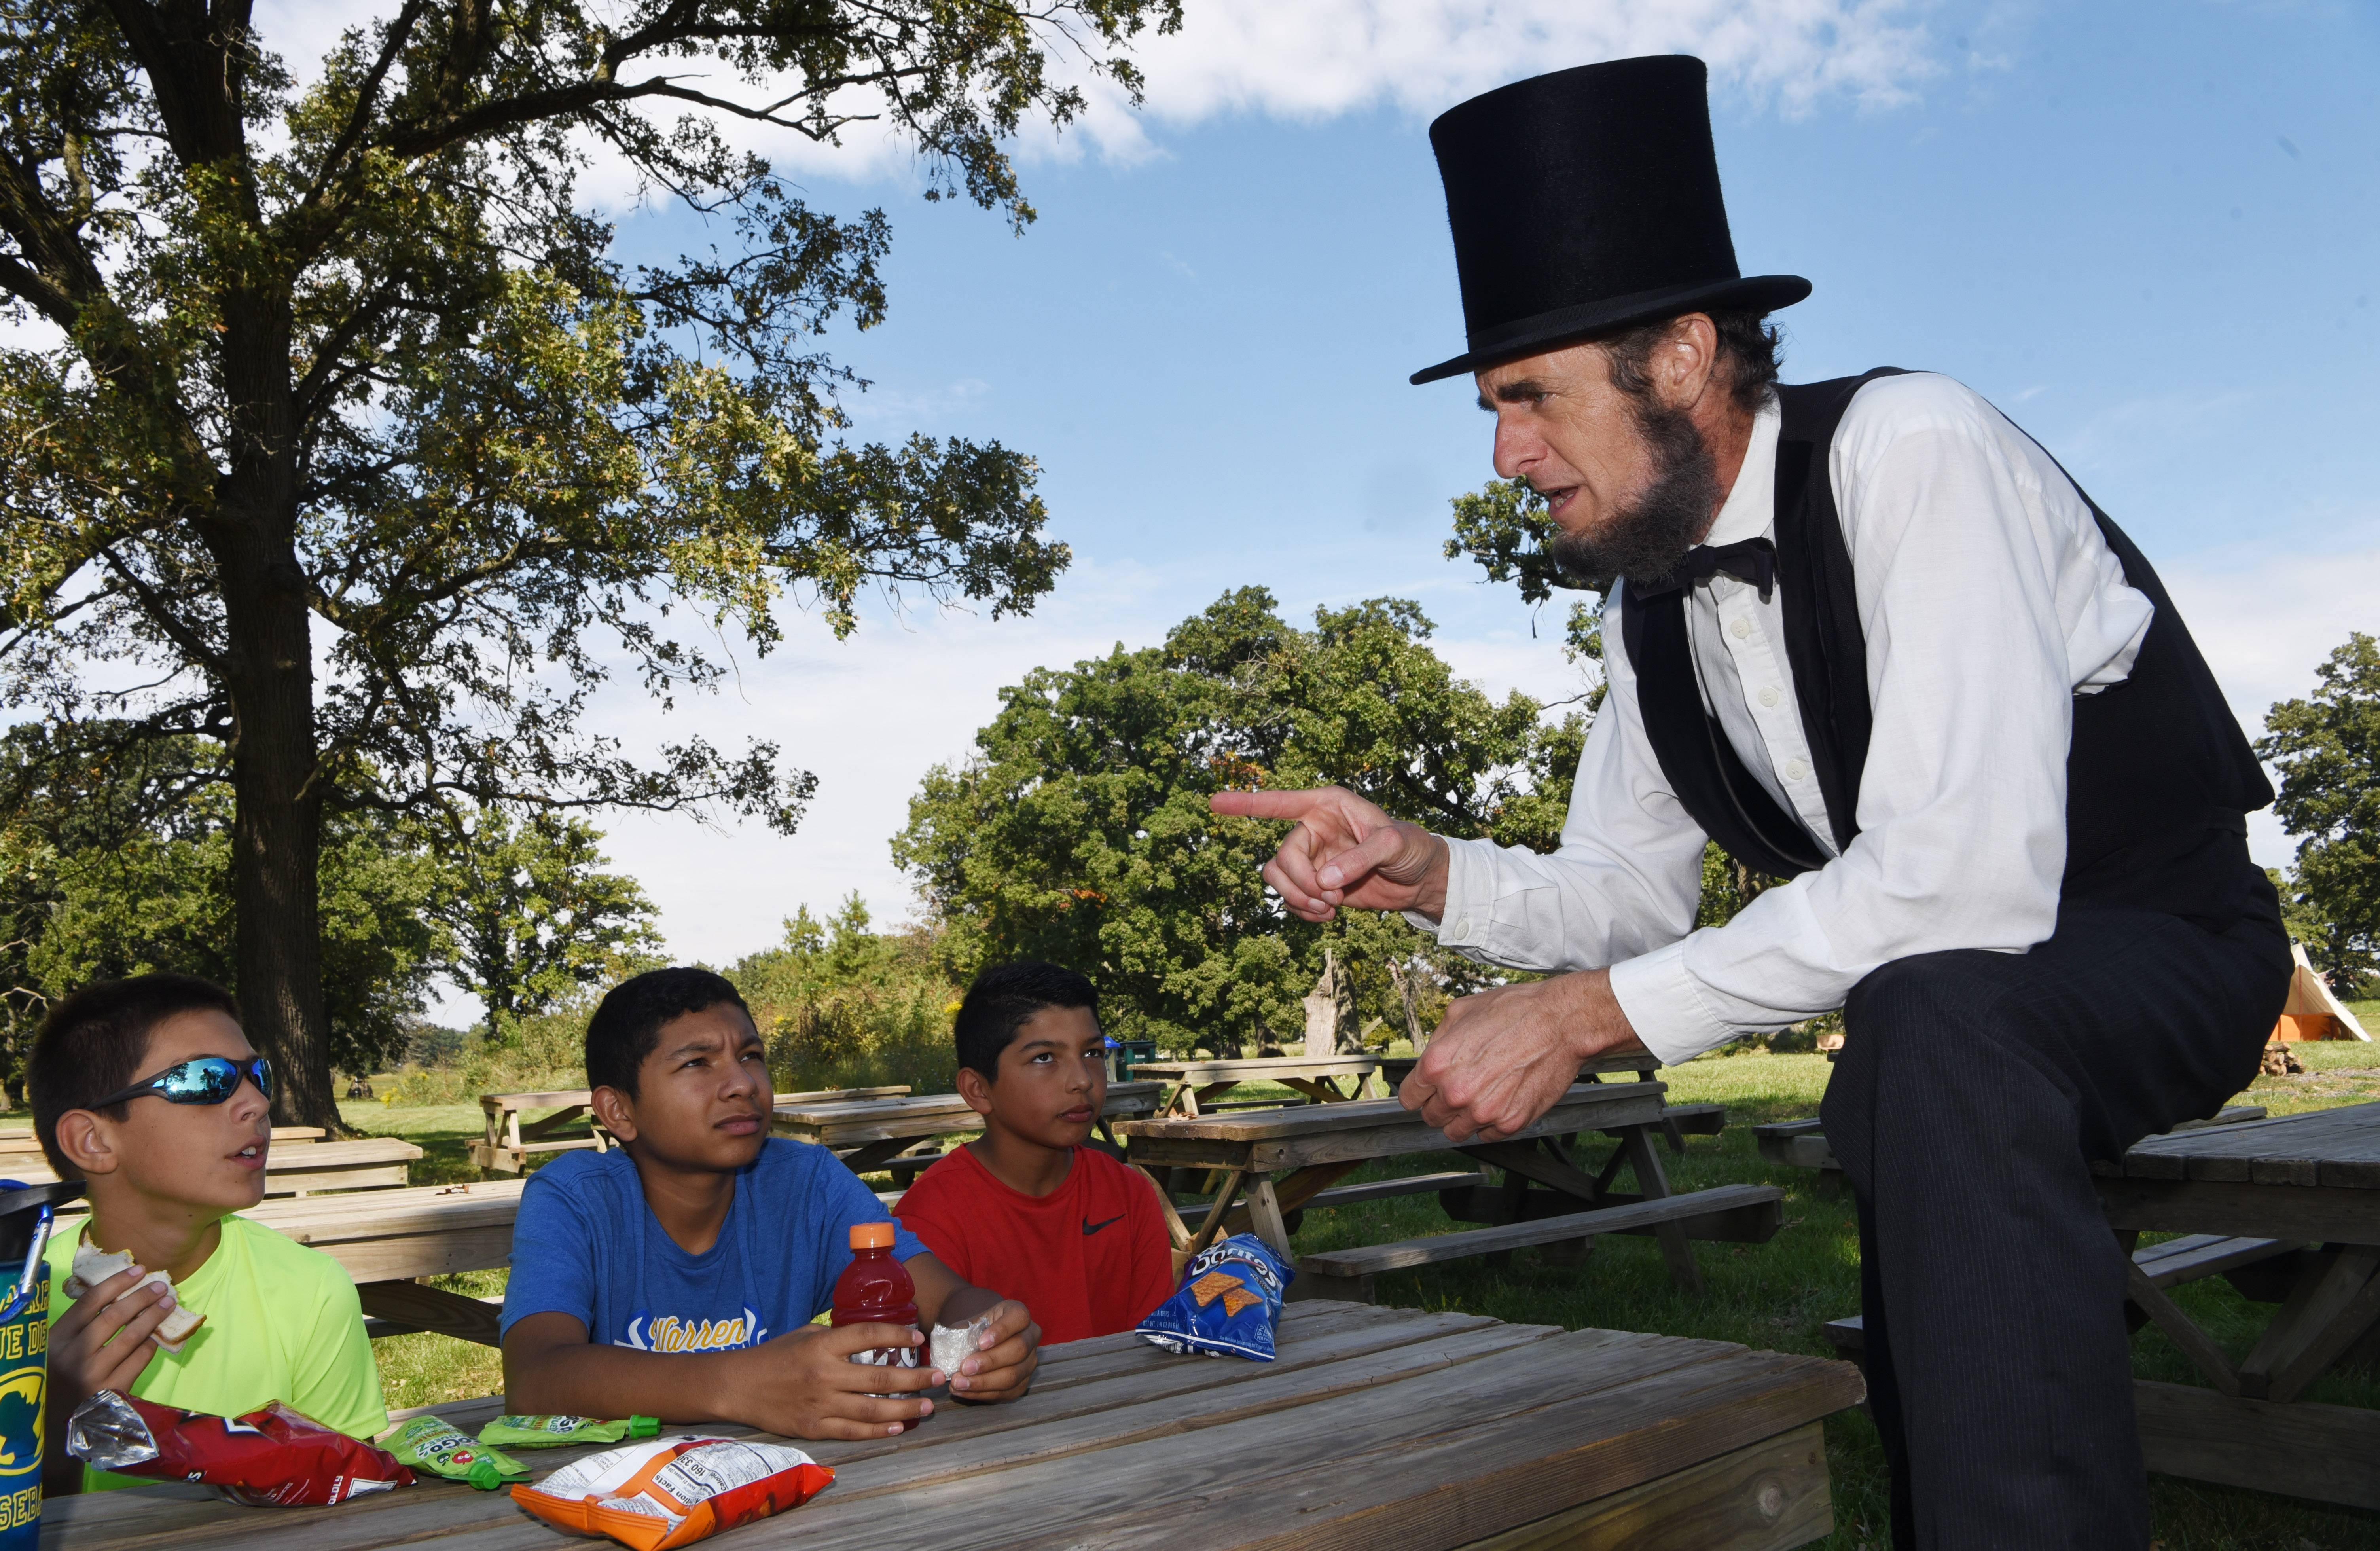 President Abraham Lincoln, portrayed by Kevin Wood of Oak Park, visits with Jake Jurkacek, 11, left, of Round Lake Park and Jacob Rolon, 13, of Round Lake Beach, and his brother, Javier, 10, as they have lunch in the picnic grove during a Civil War re-enactment Sunday in Hainesville.